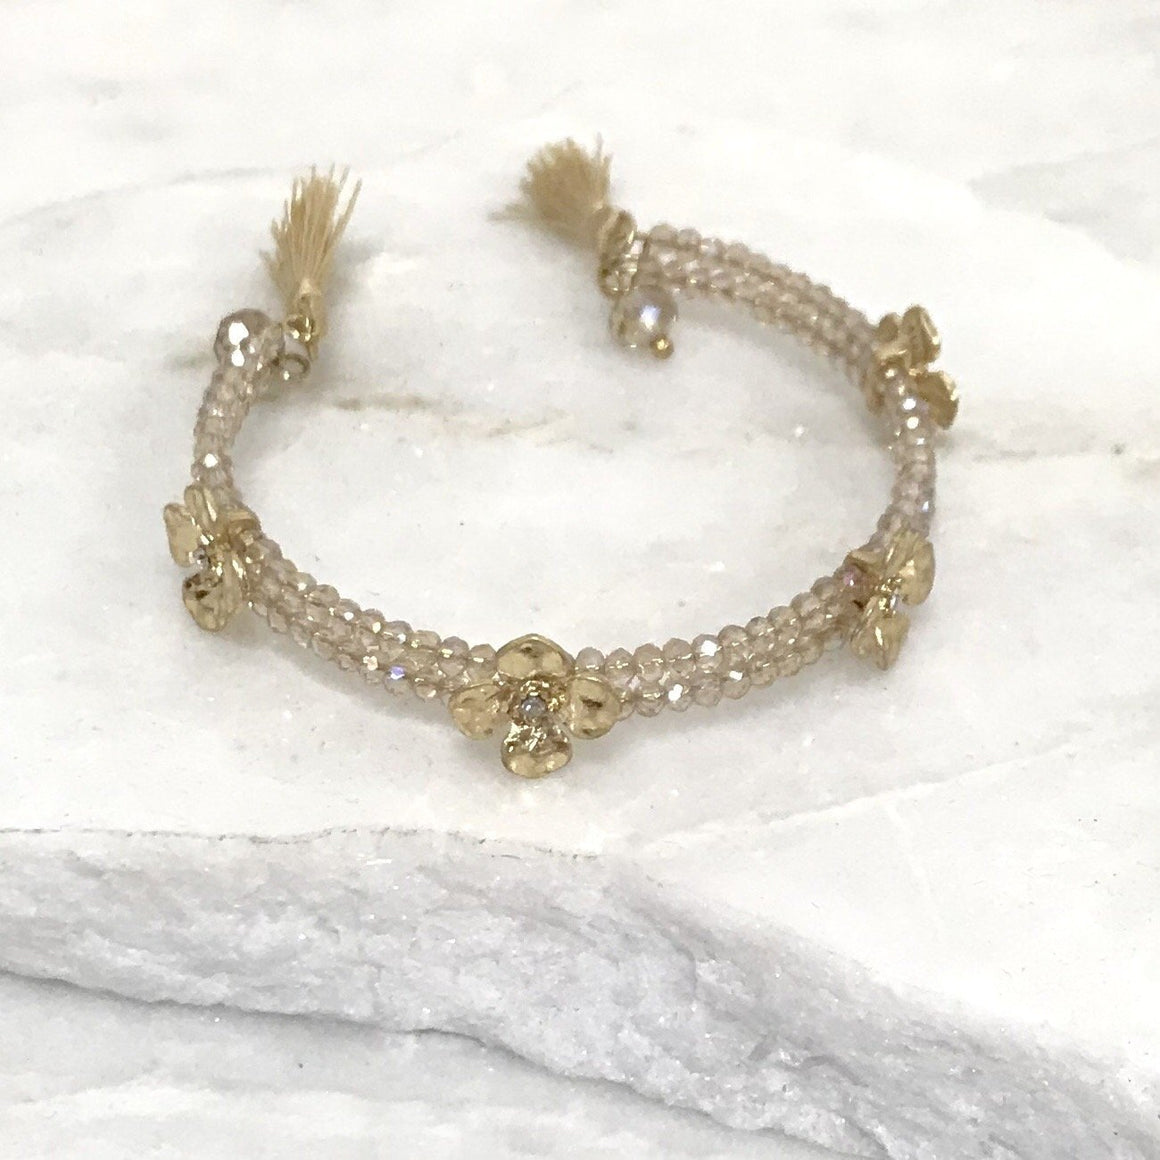 Golden Daisy Bead Bangle Cuff Bracelet - Dainty Hooligan